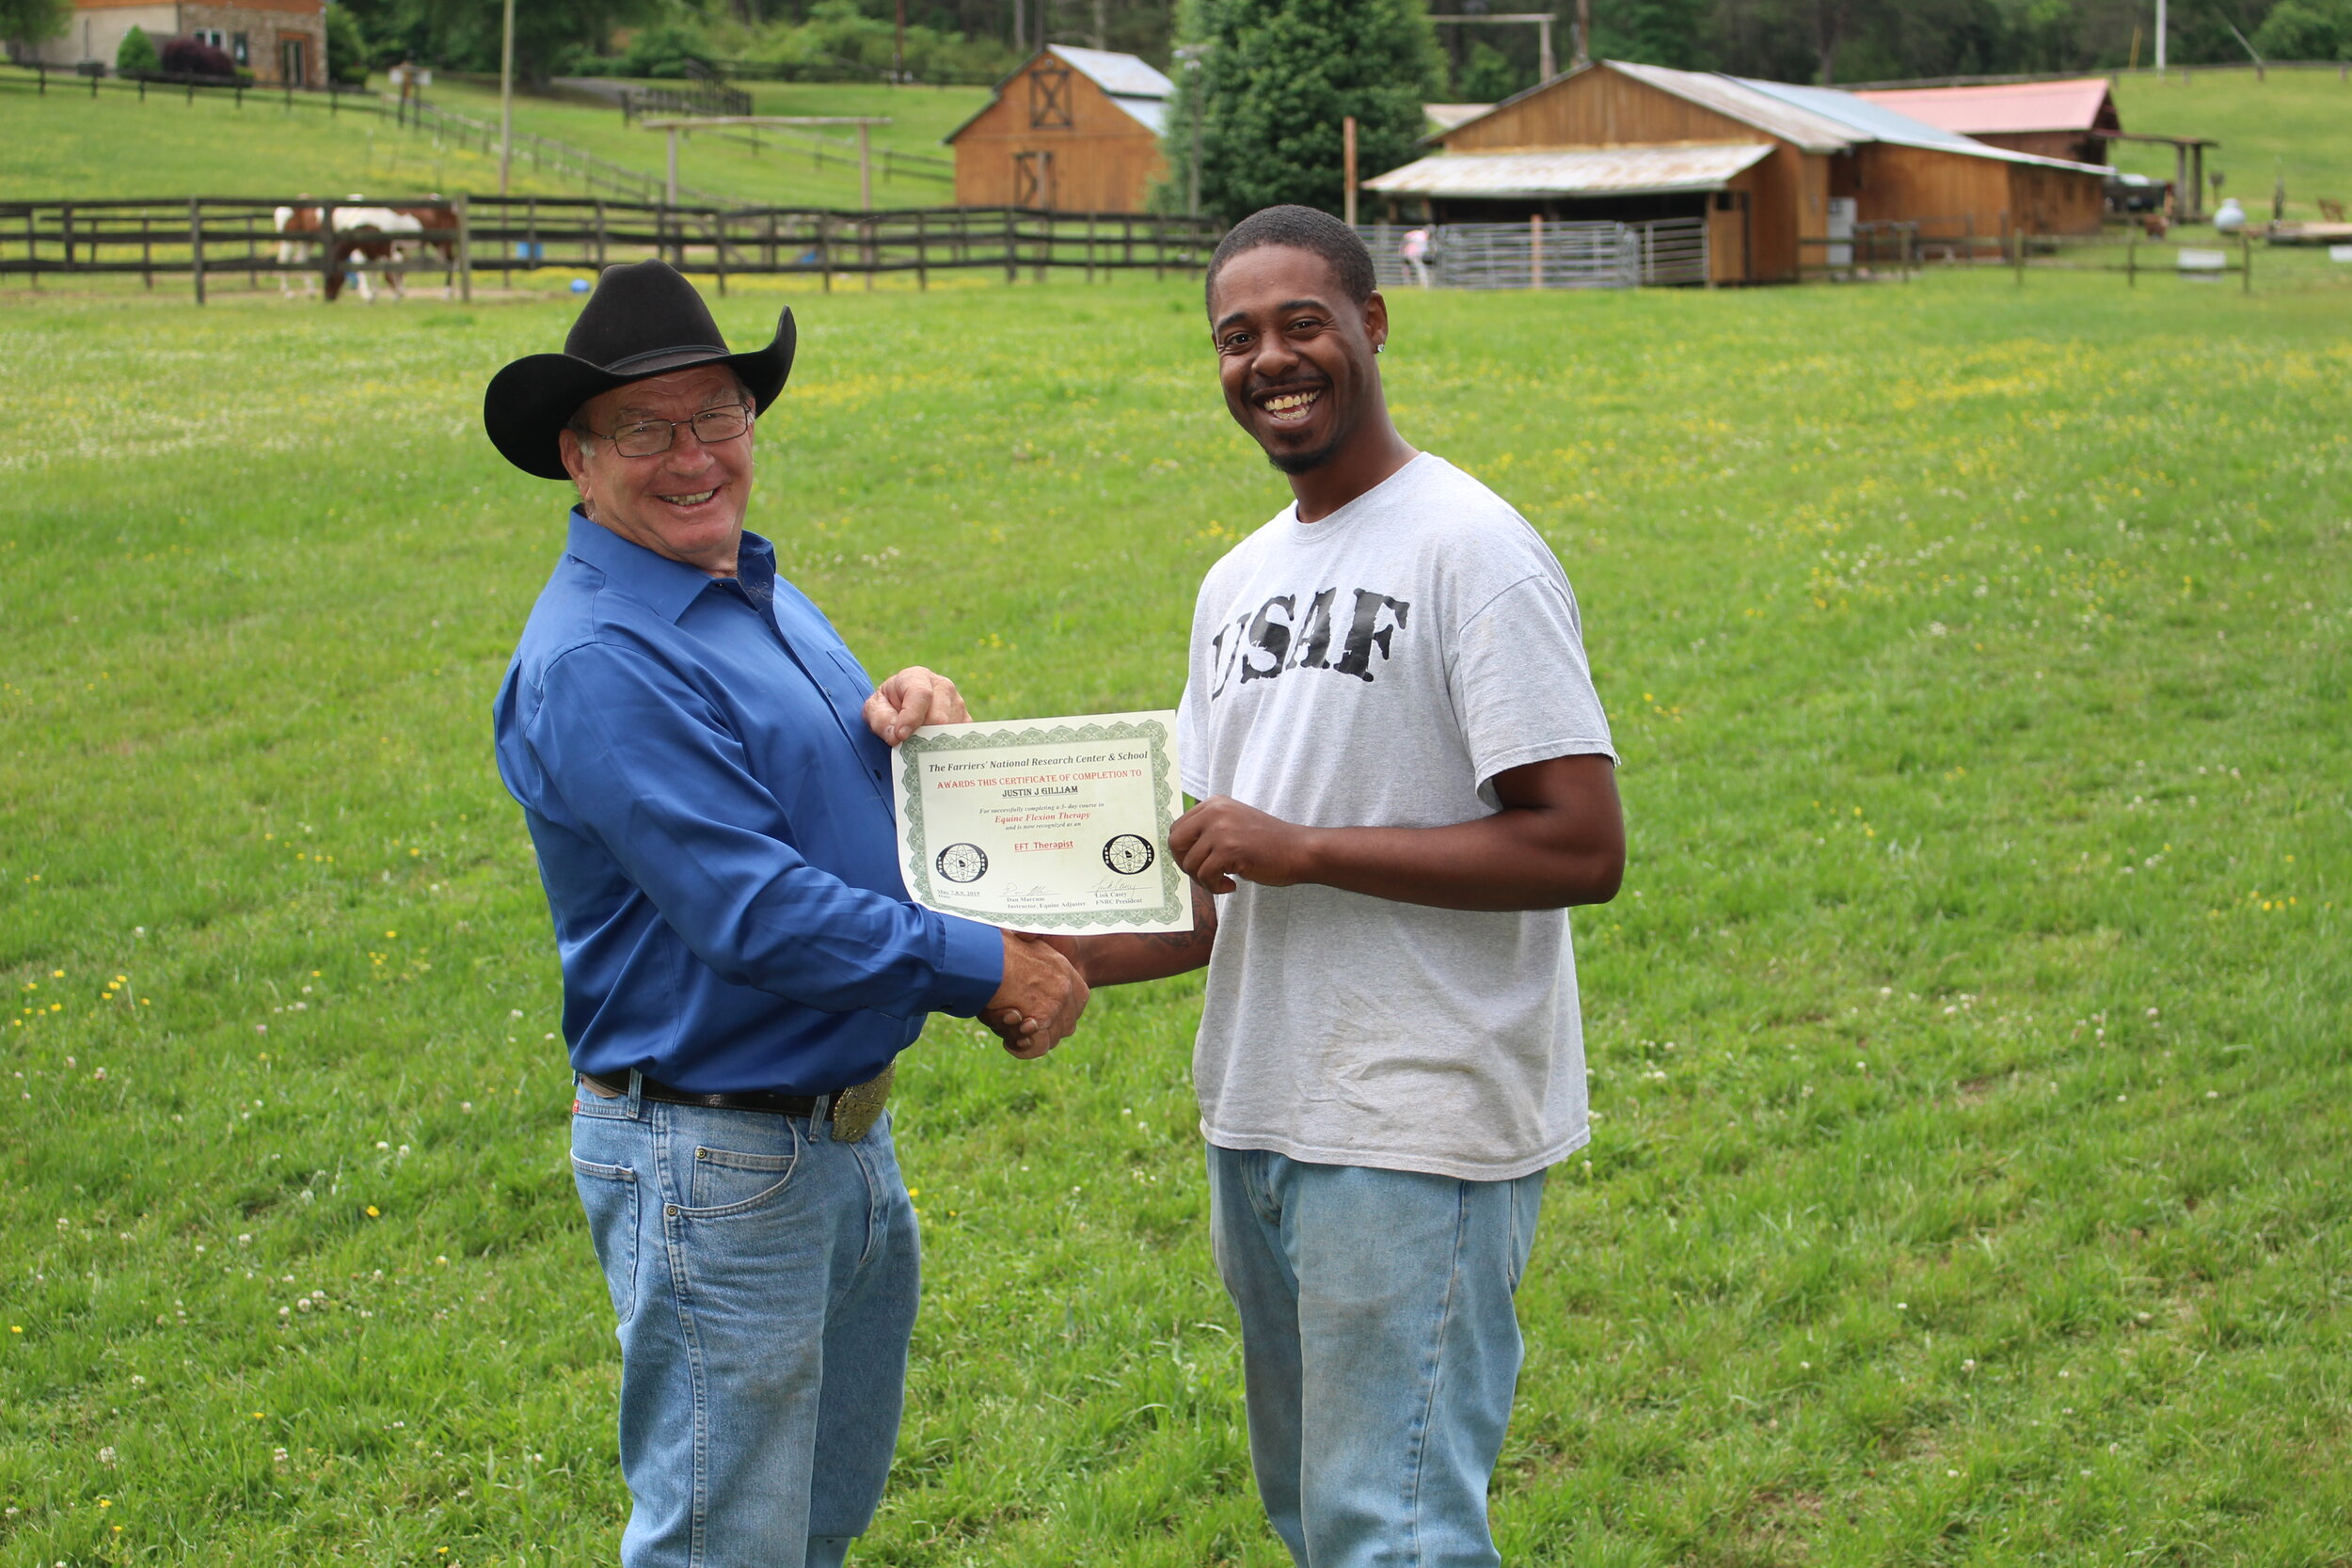 Justin Gilliam pictured here with Equine Flexion Therapy Instructor, Dan Marcum of Texas.